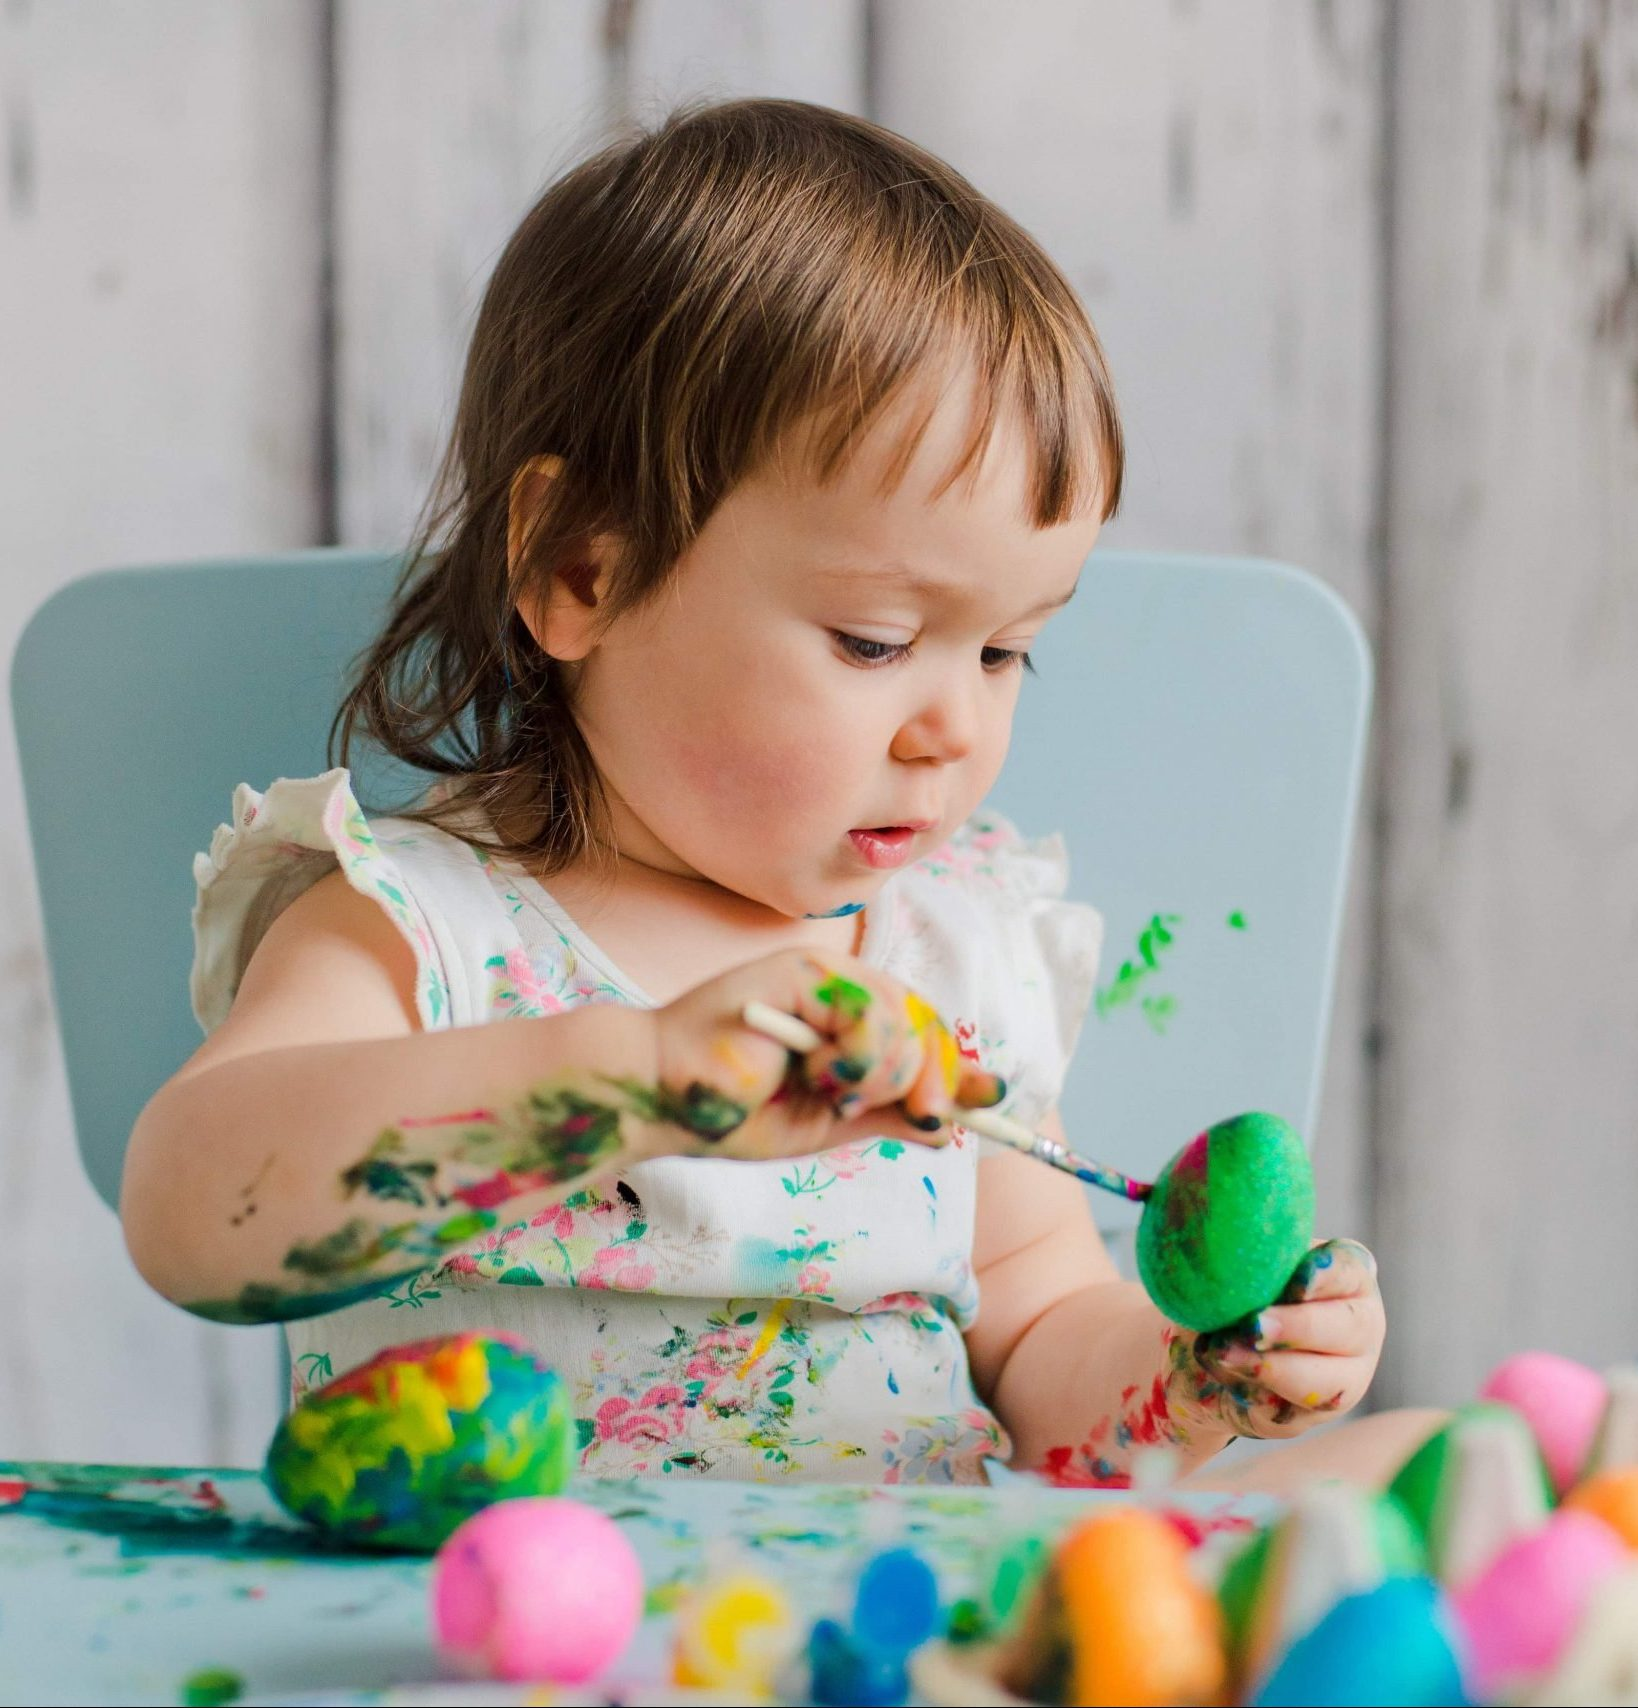 lily-baby-painting-easter-eggs-eden-profile